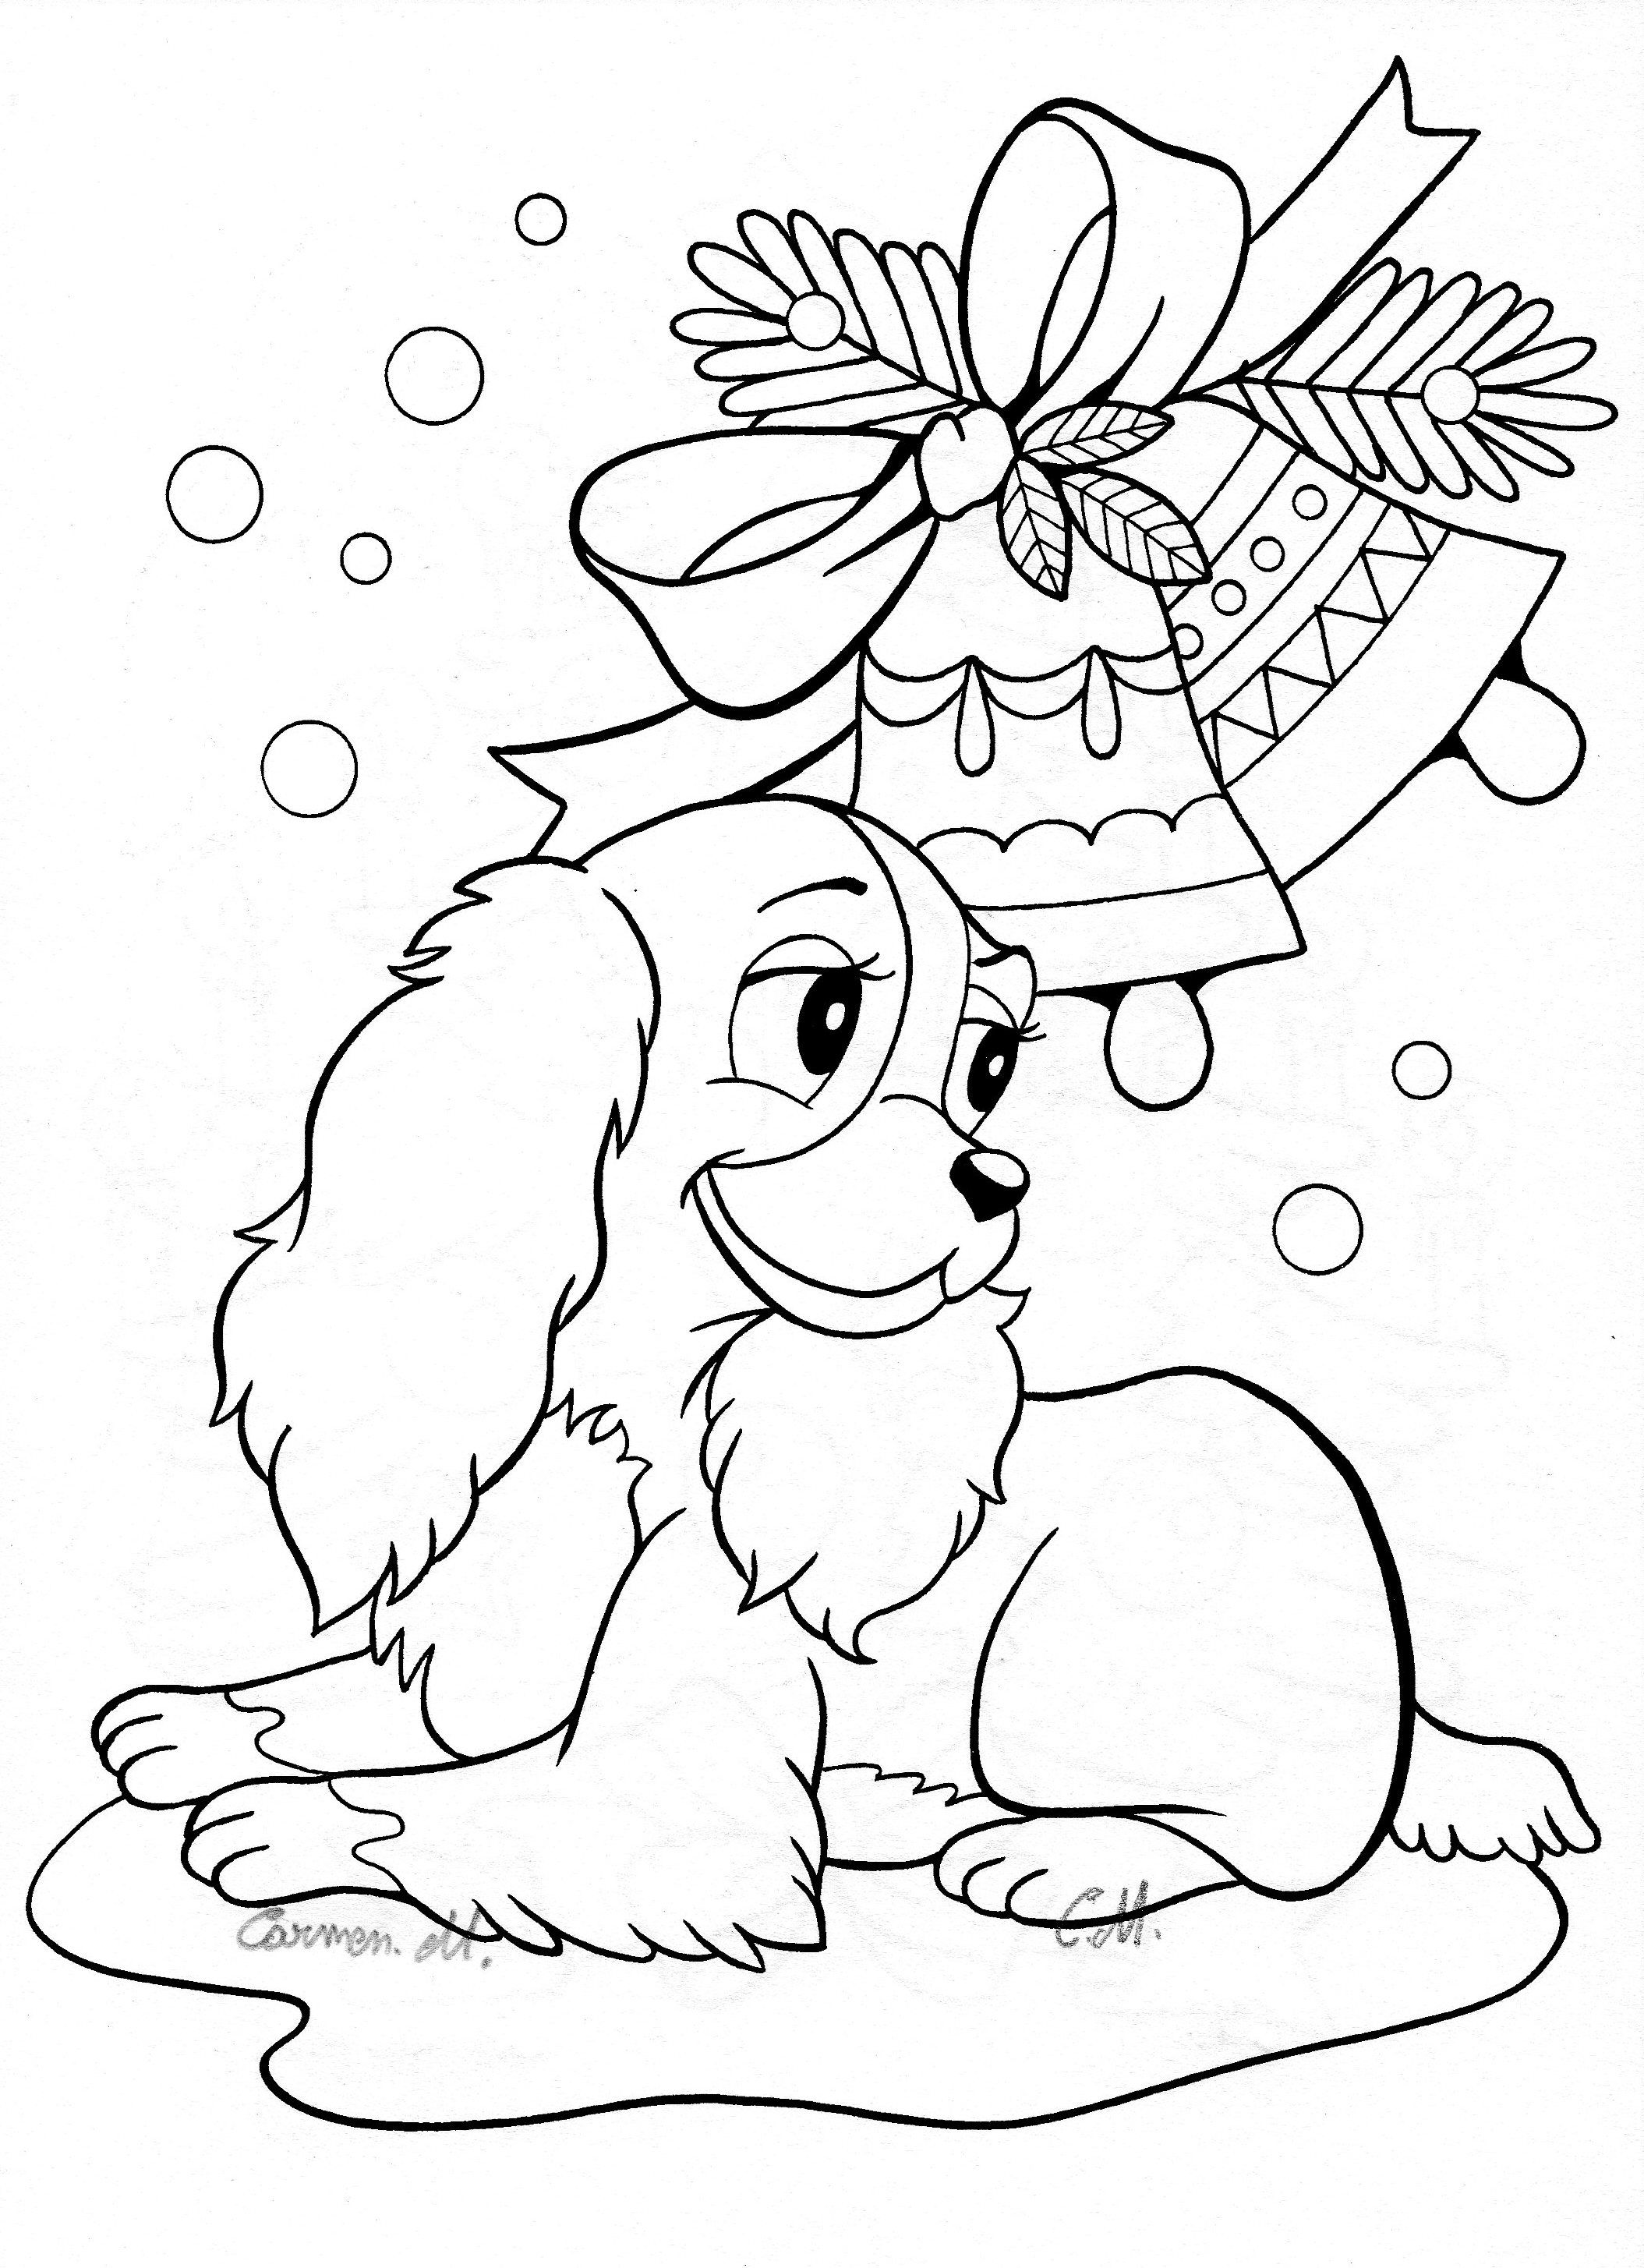 Kids Crafts: Cute Coloring Pages! : )   Cute coloring ...